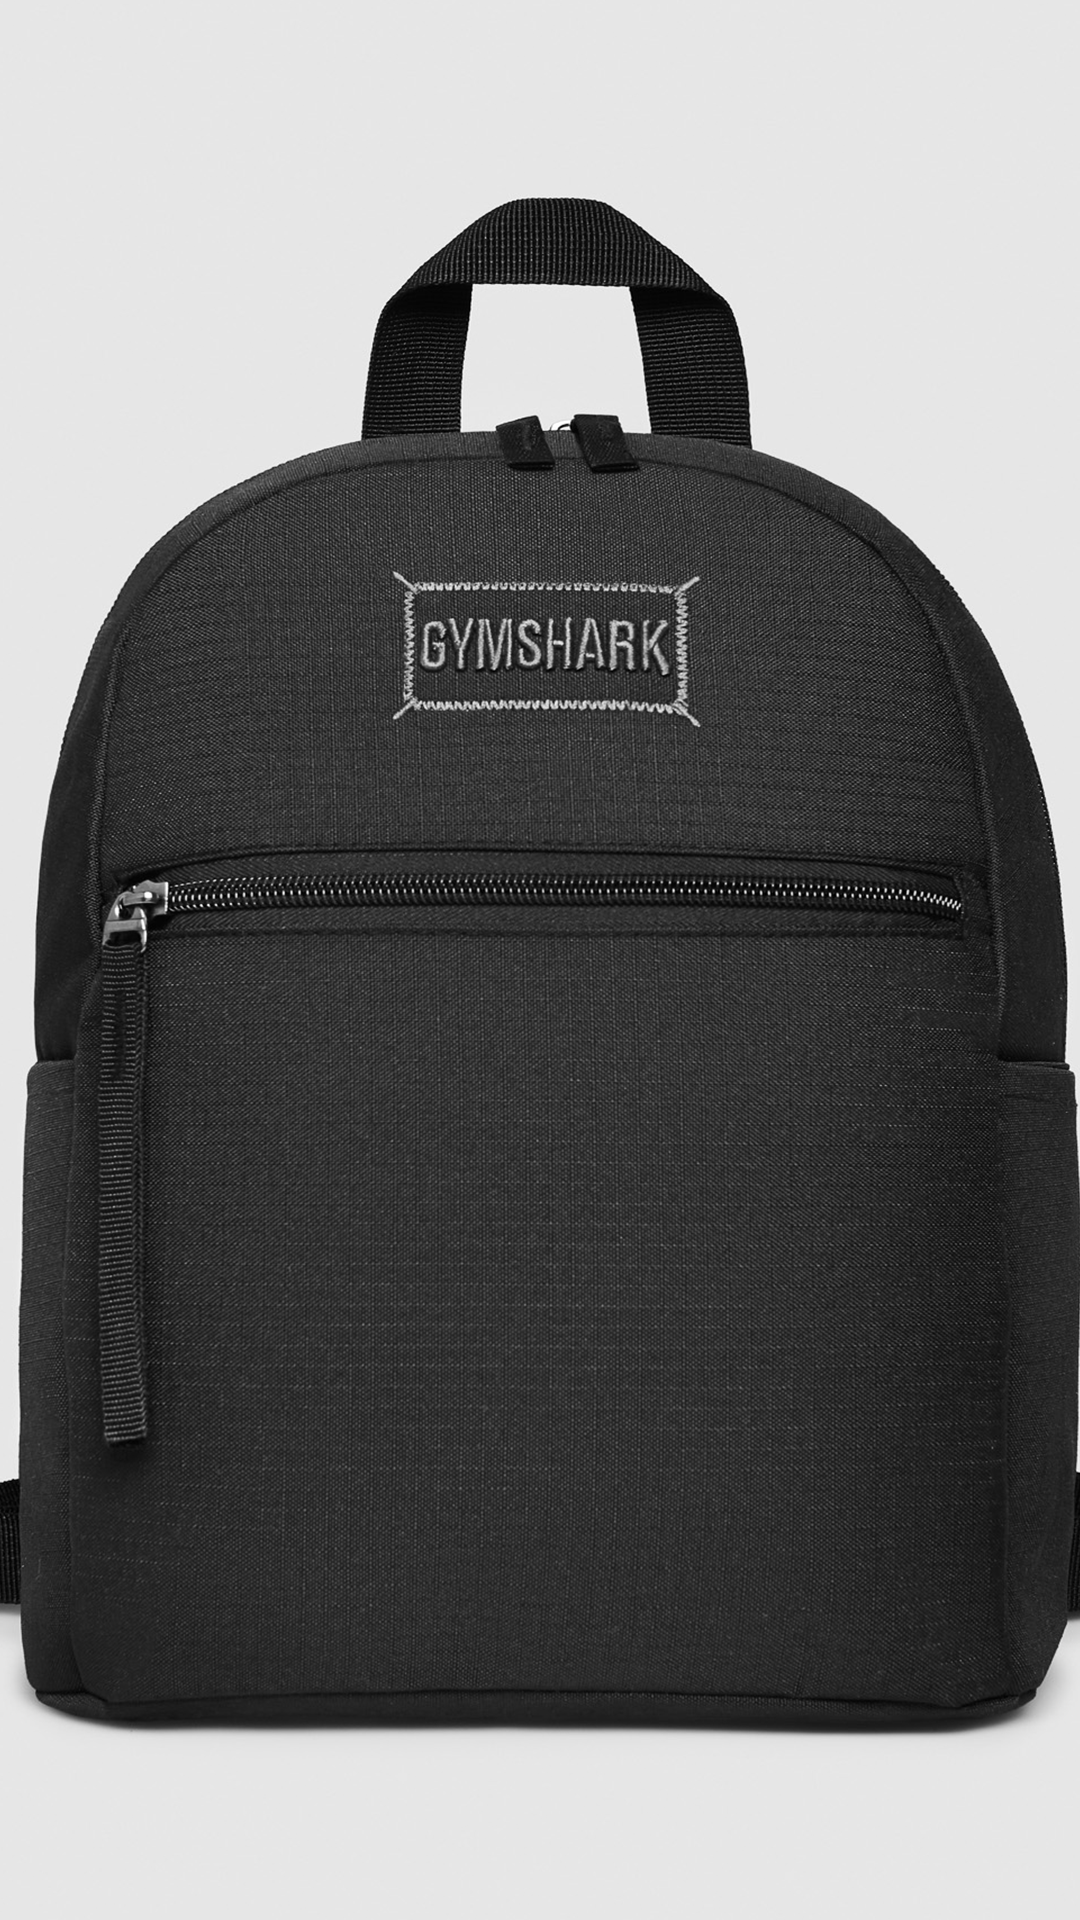 Gymshark  Accessories  Bag  Gym  Fitness  Workout  Exercise  Black   Monochrome  Backpack fd0fb2ce0dab5